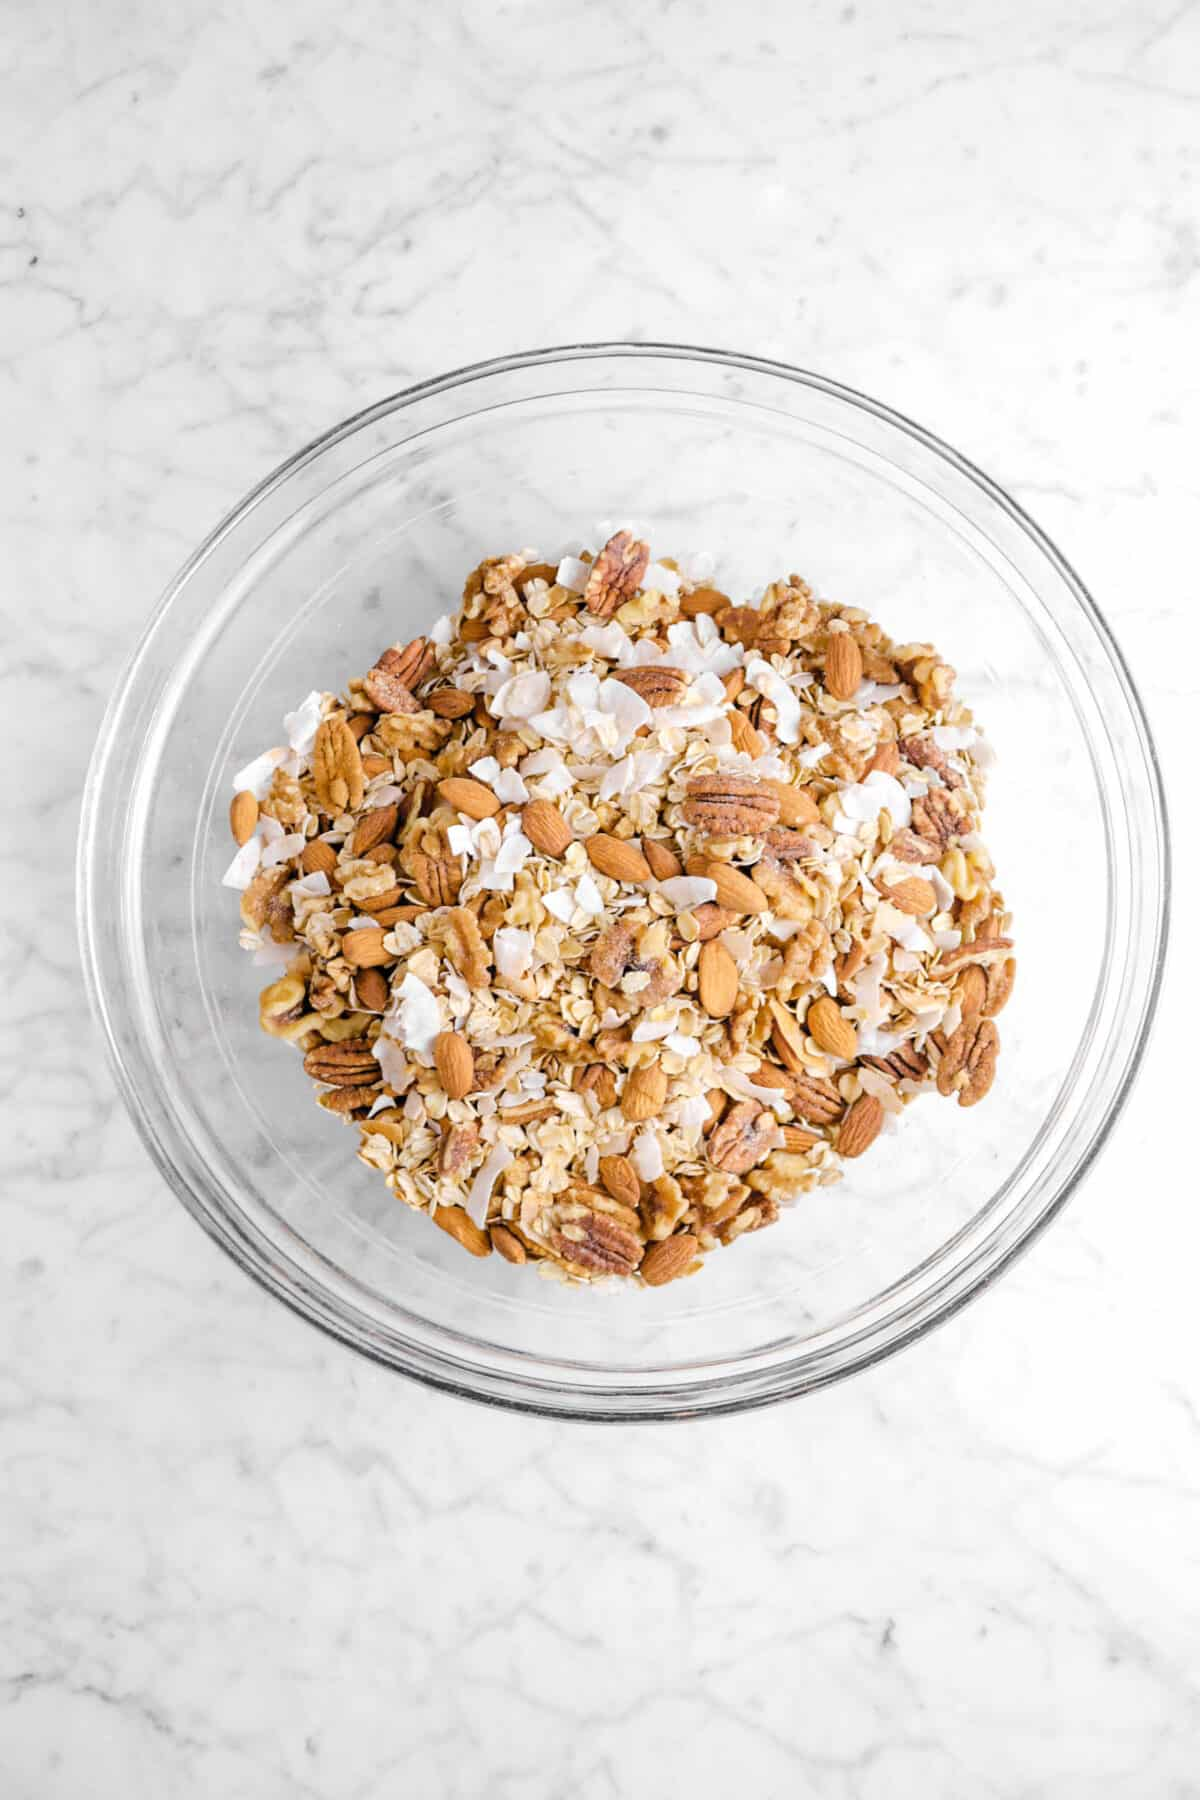 nut mixture in glass bowl